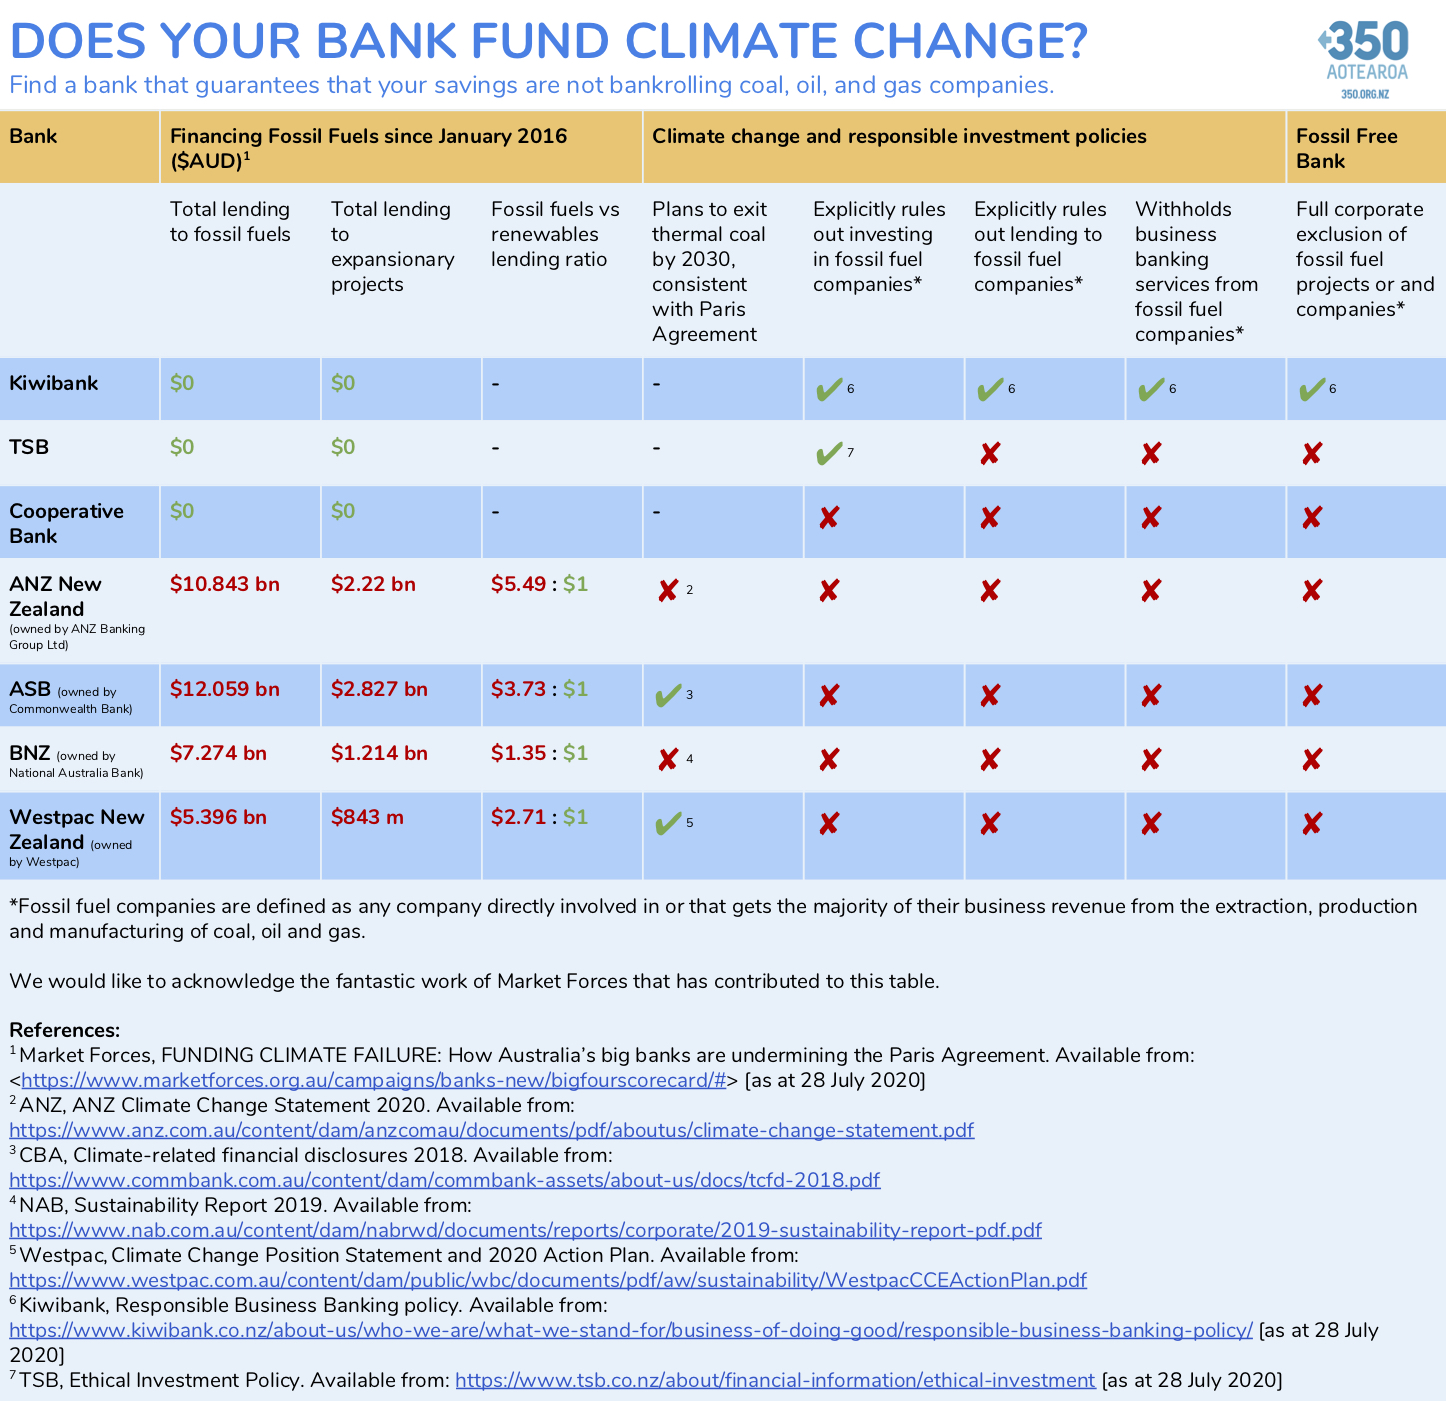 Does your bank fund climate change? Find a bank that guarantees that your savings are not bankrolling coal, oil, and gas companies. The table shows information about ANZ, ASB, BNZ, Westpac, Kiwibank, TSB, and the Cooperative Bank. There are 2 main parts to the table: a breakdown of each bank's financing to fossil fuels since January 2016 ($AUD); and an assessment of each bank's climate change and responsible investment policies. The only bank that meets the criteria to be a fossil free bank with full corporate exclusion of fossil fuel projects or and companies is Kiwibank. Please note a screen reader friendly PDF version of the table is available at the link below.